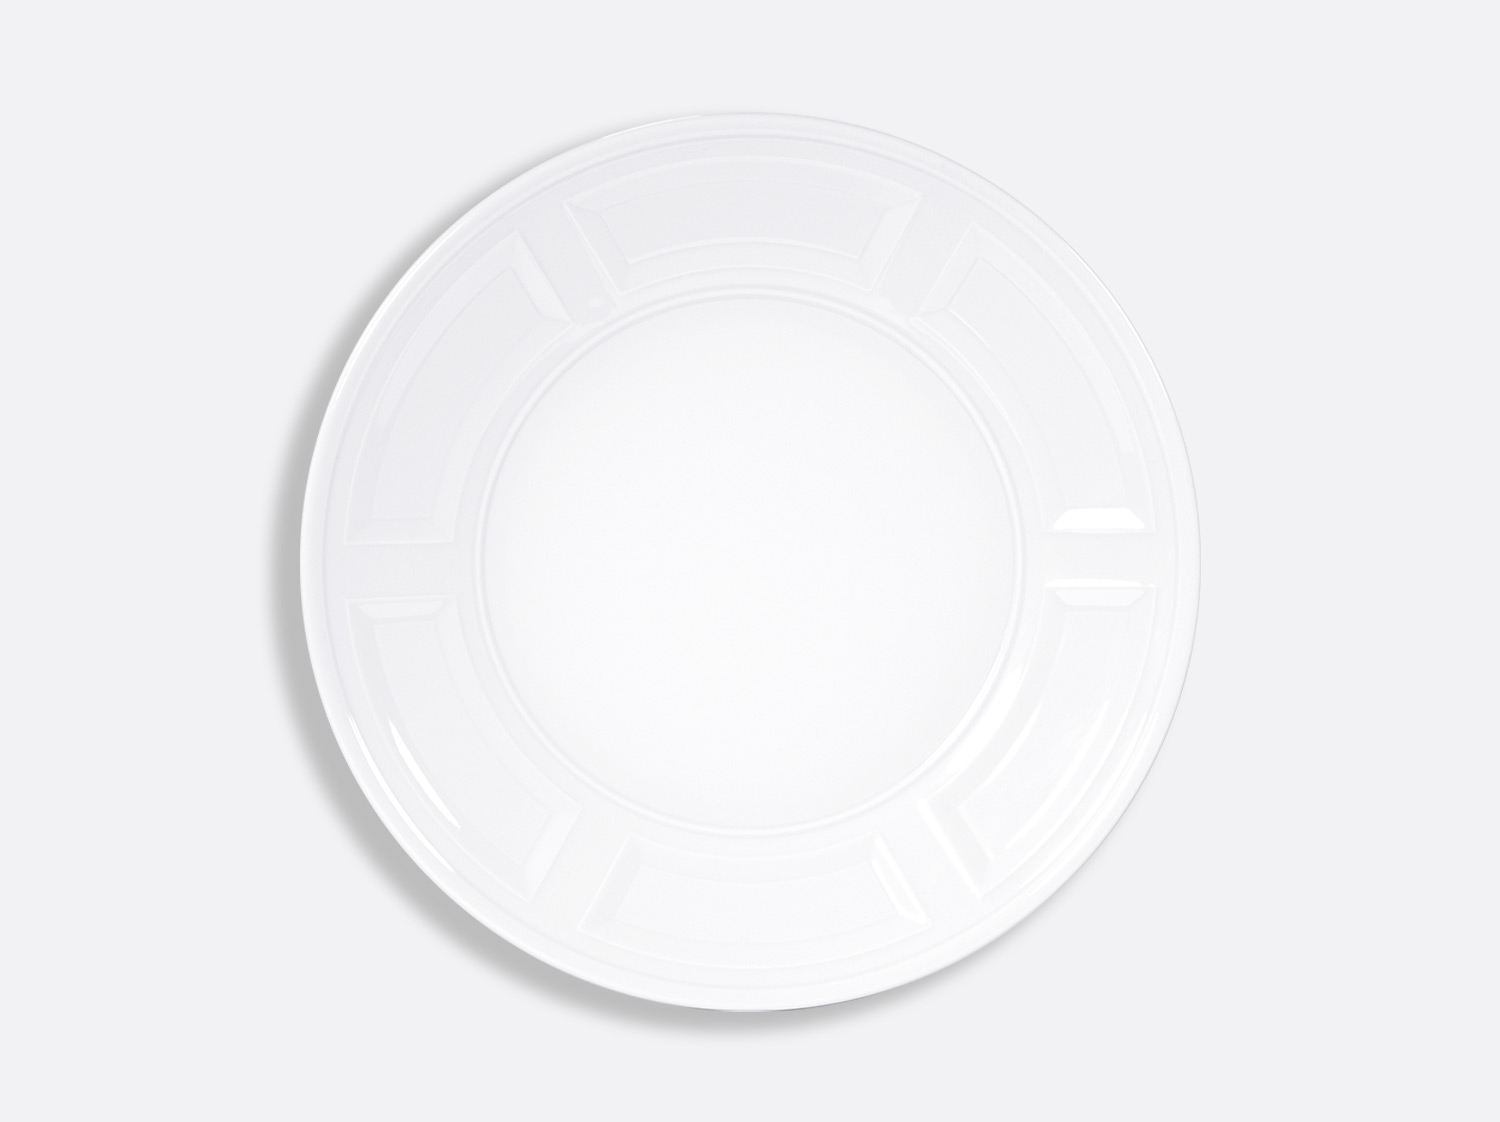 Assiette plate 29,5 cm en porcelaine de la collection ATHOS BLANC Bernardaud